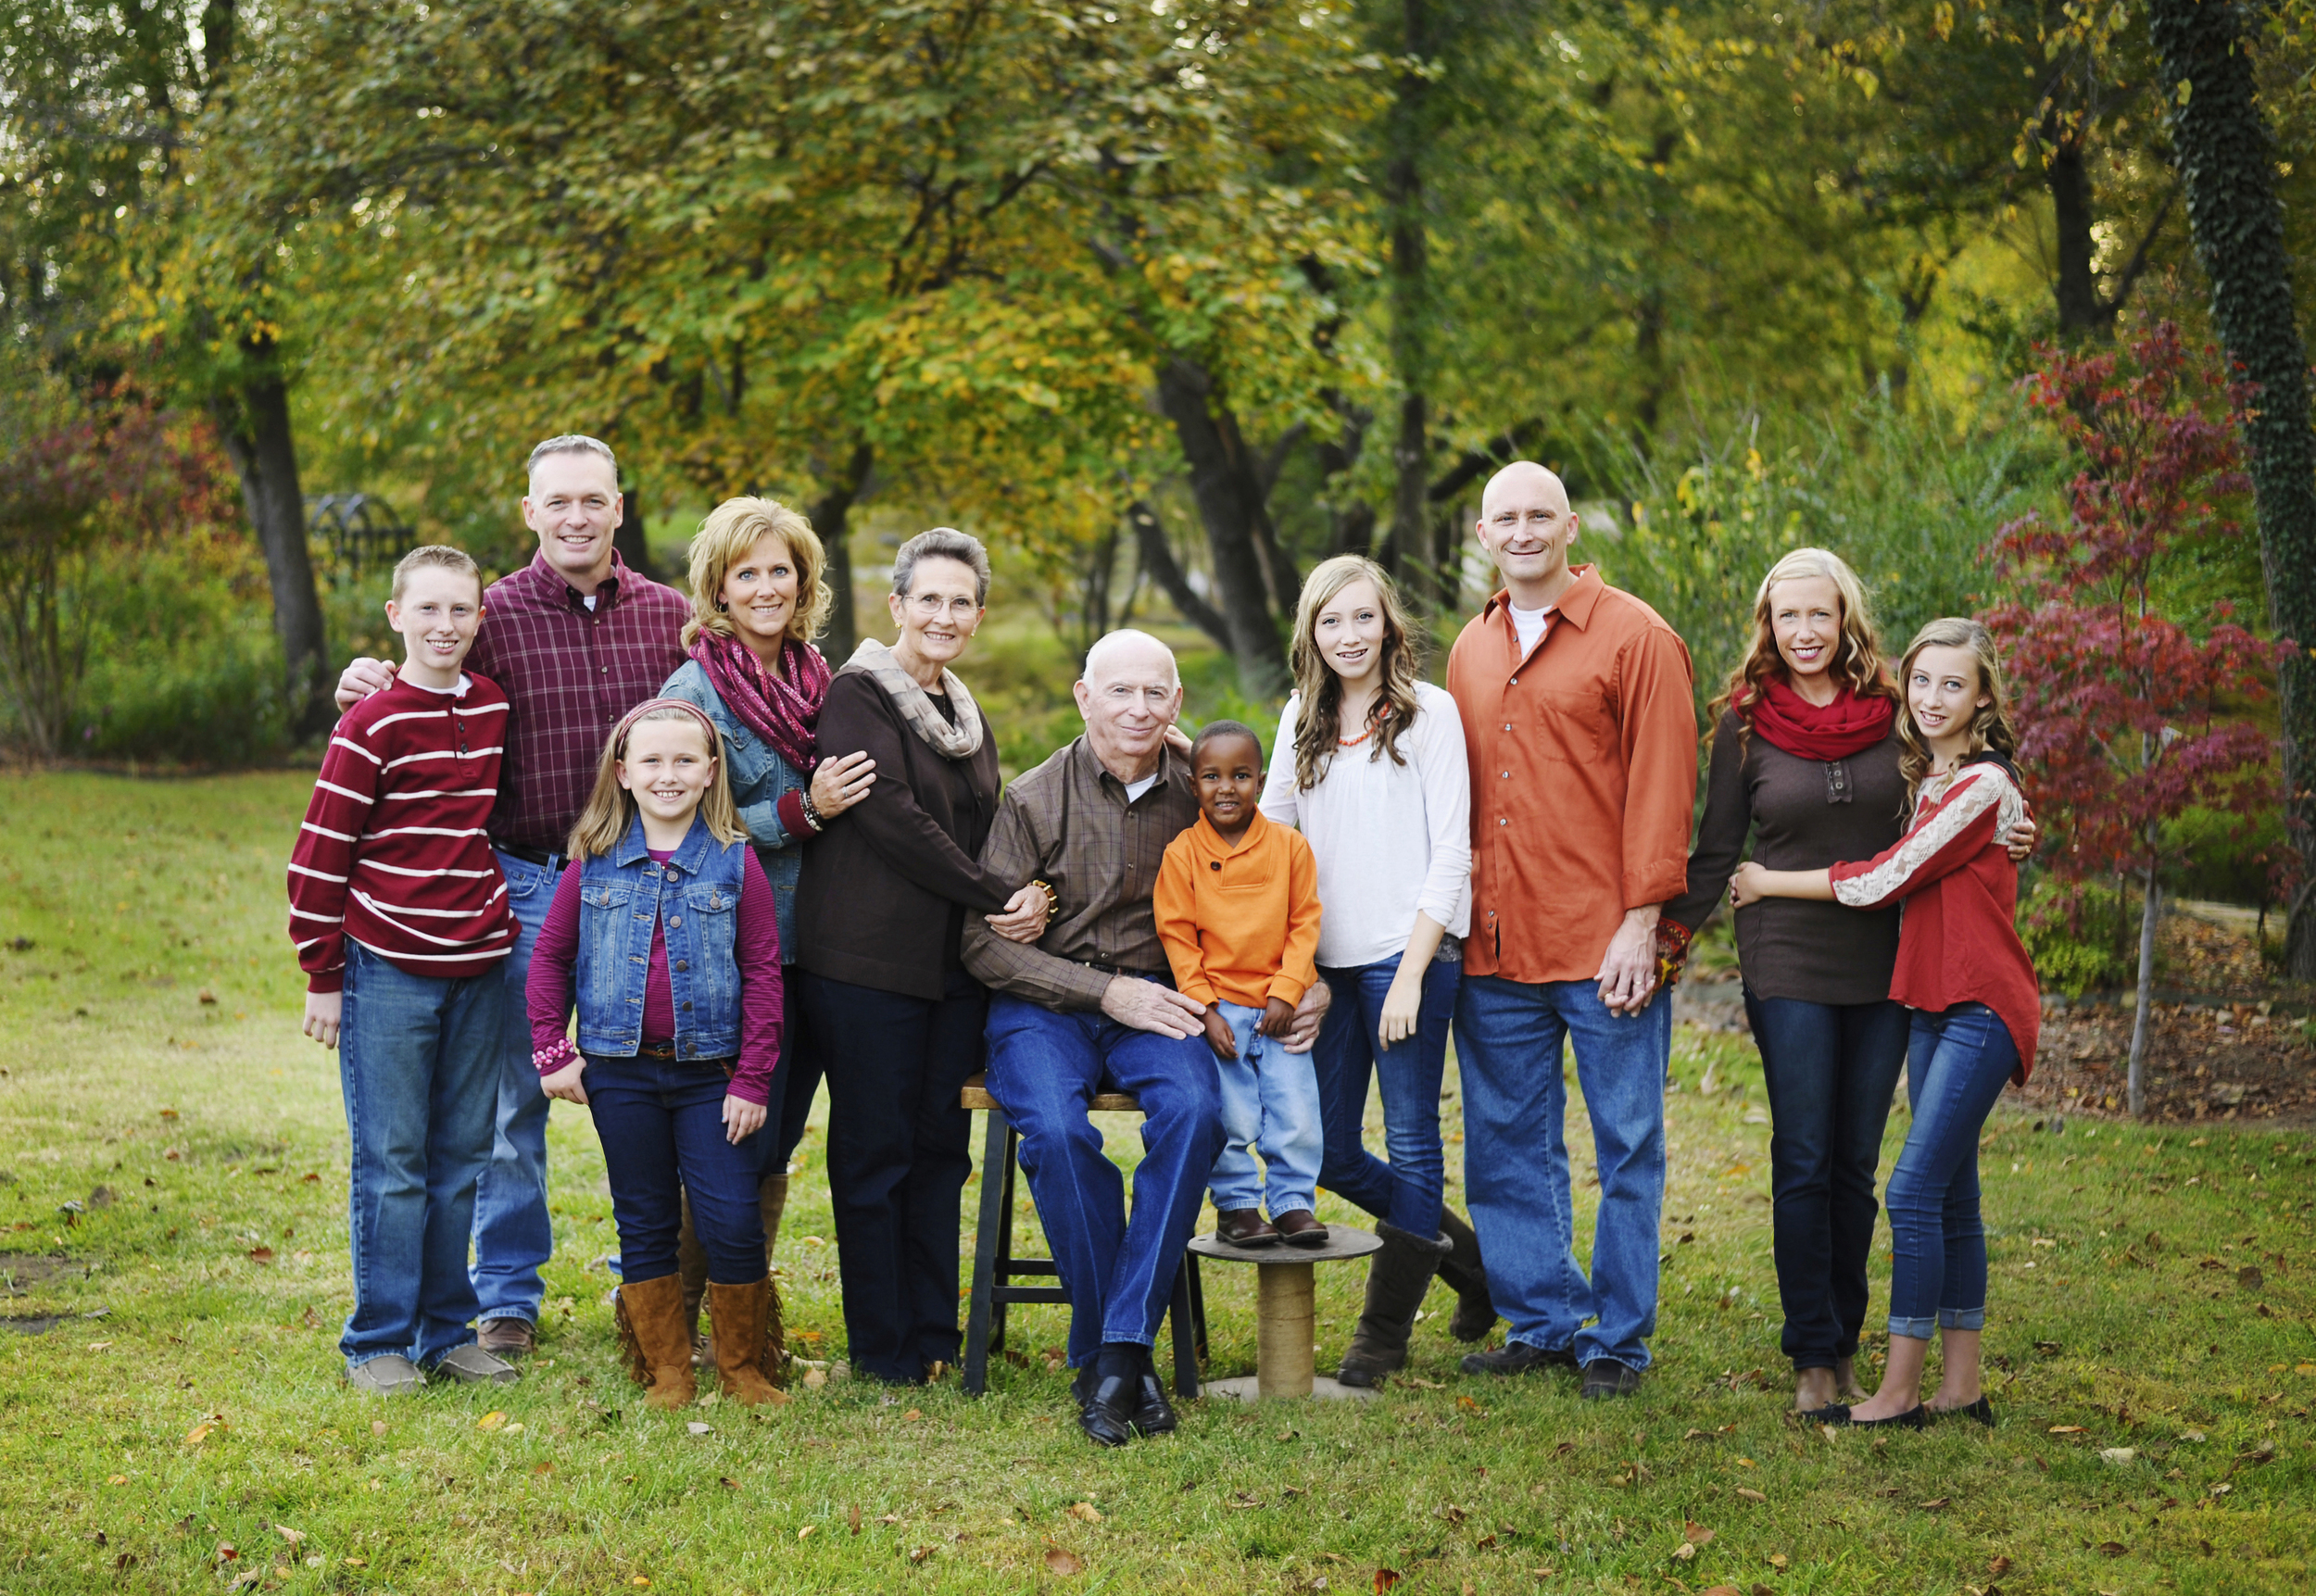 One of my most favorite things to   photograph is an extended family portrait because I think they're so important.  They can also be very tricky to coordinate outfits and make everyone happy.  This family photographed in the fall went with some great fall colors that really work well together.  They chose brown as their neutral color and orange and magenta as their accent colors.  I think it all worked perfectly and wardrobe didn't distract from the most important thing in this photo which is family and oh what a sweet family it is.  Good job everyone!